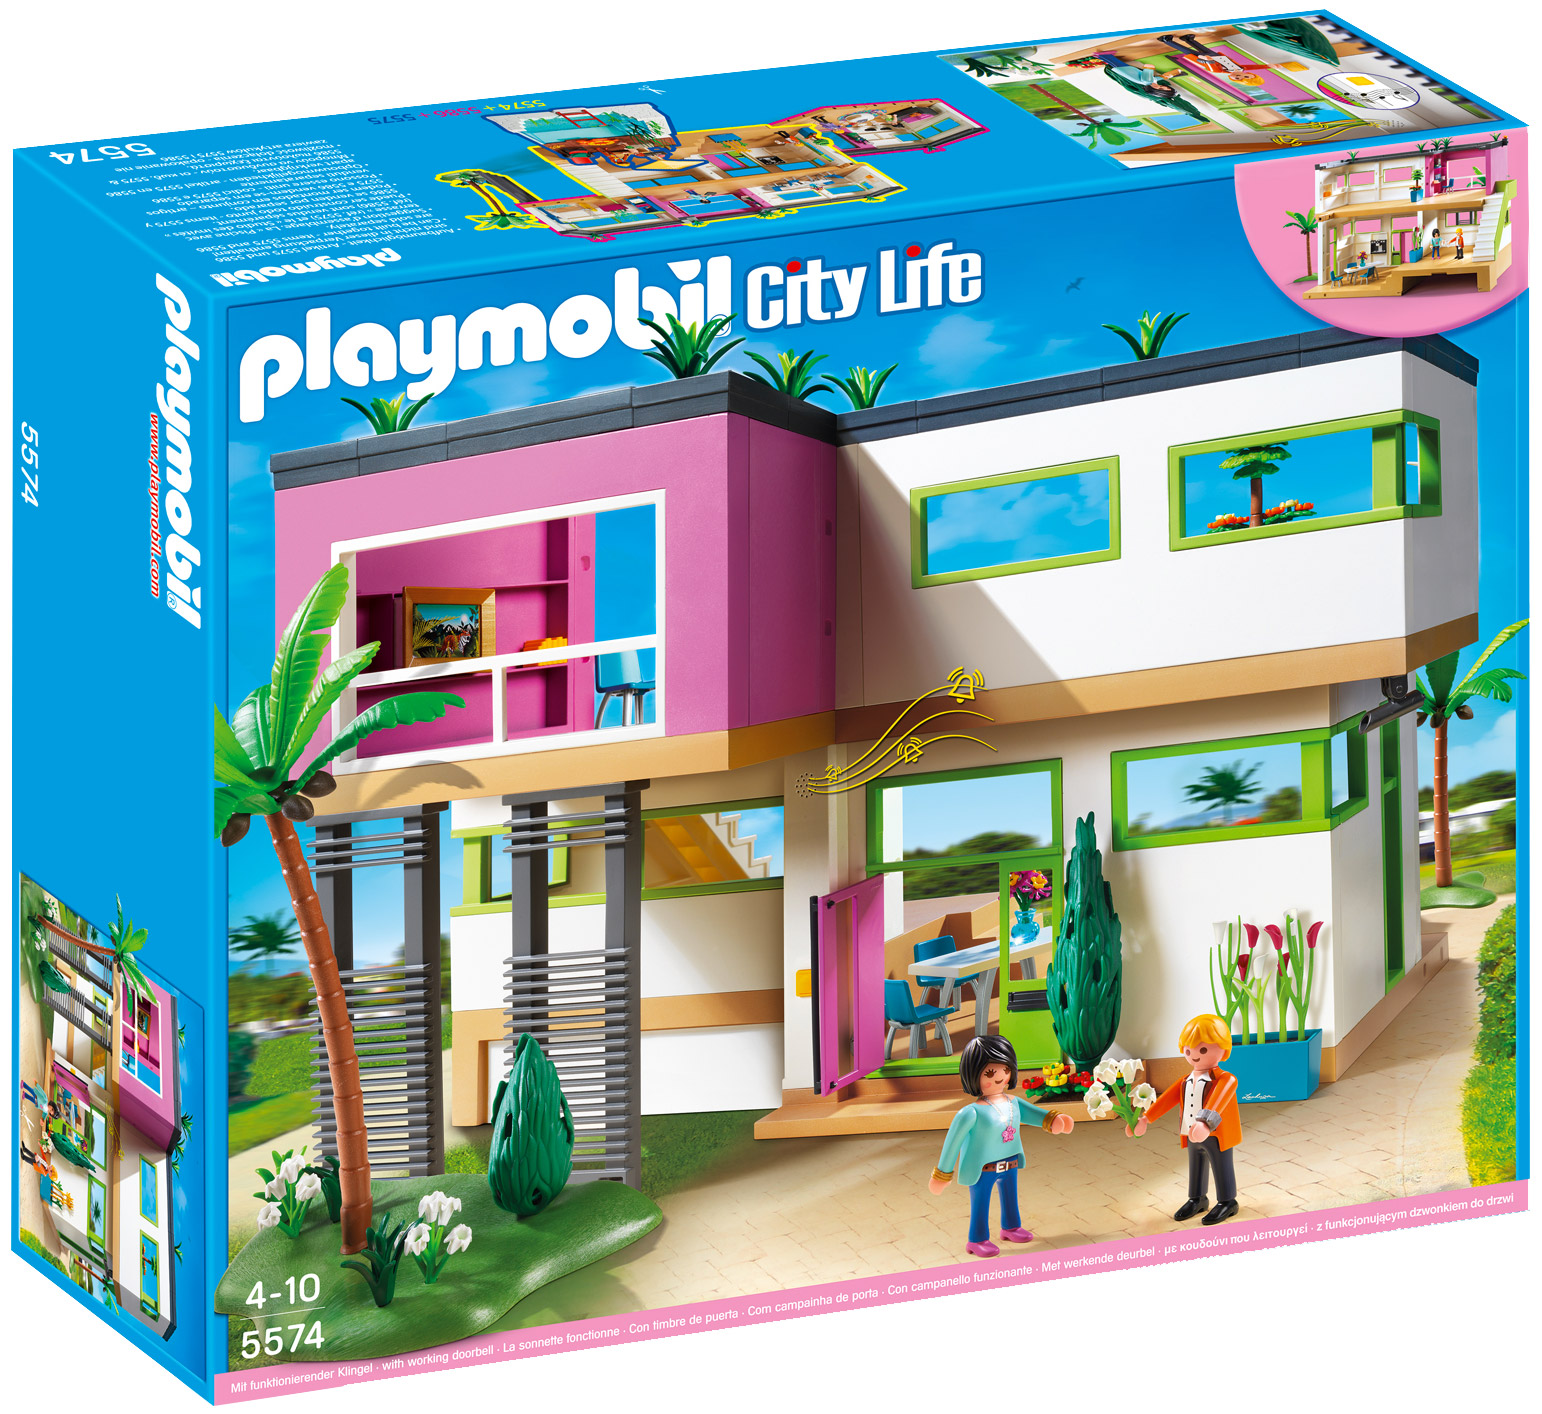 Awesome Maison Moderne De Luxe Playmobil Pictures - Nettizen.us ...